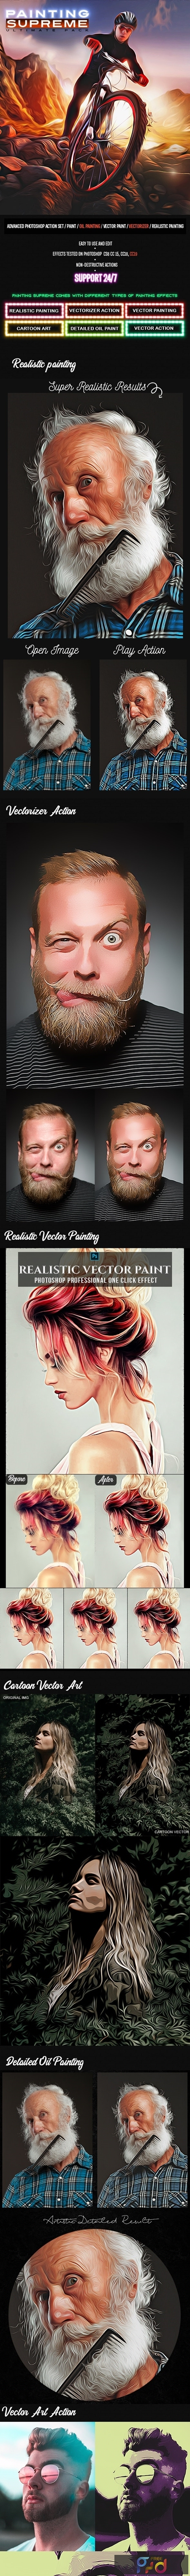 Supreme Painting Photoshop Actions 24884912 1